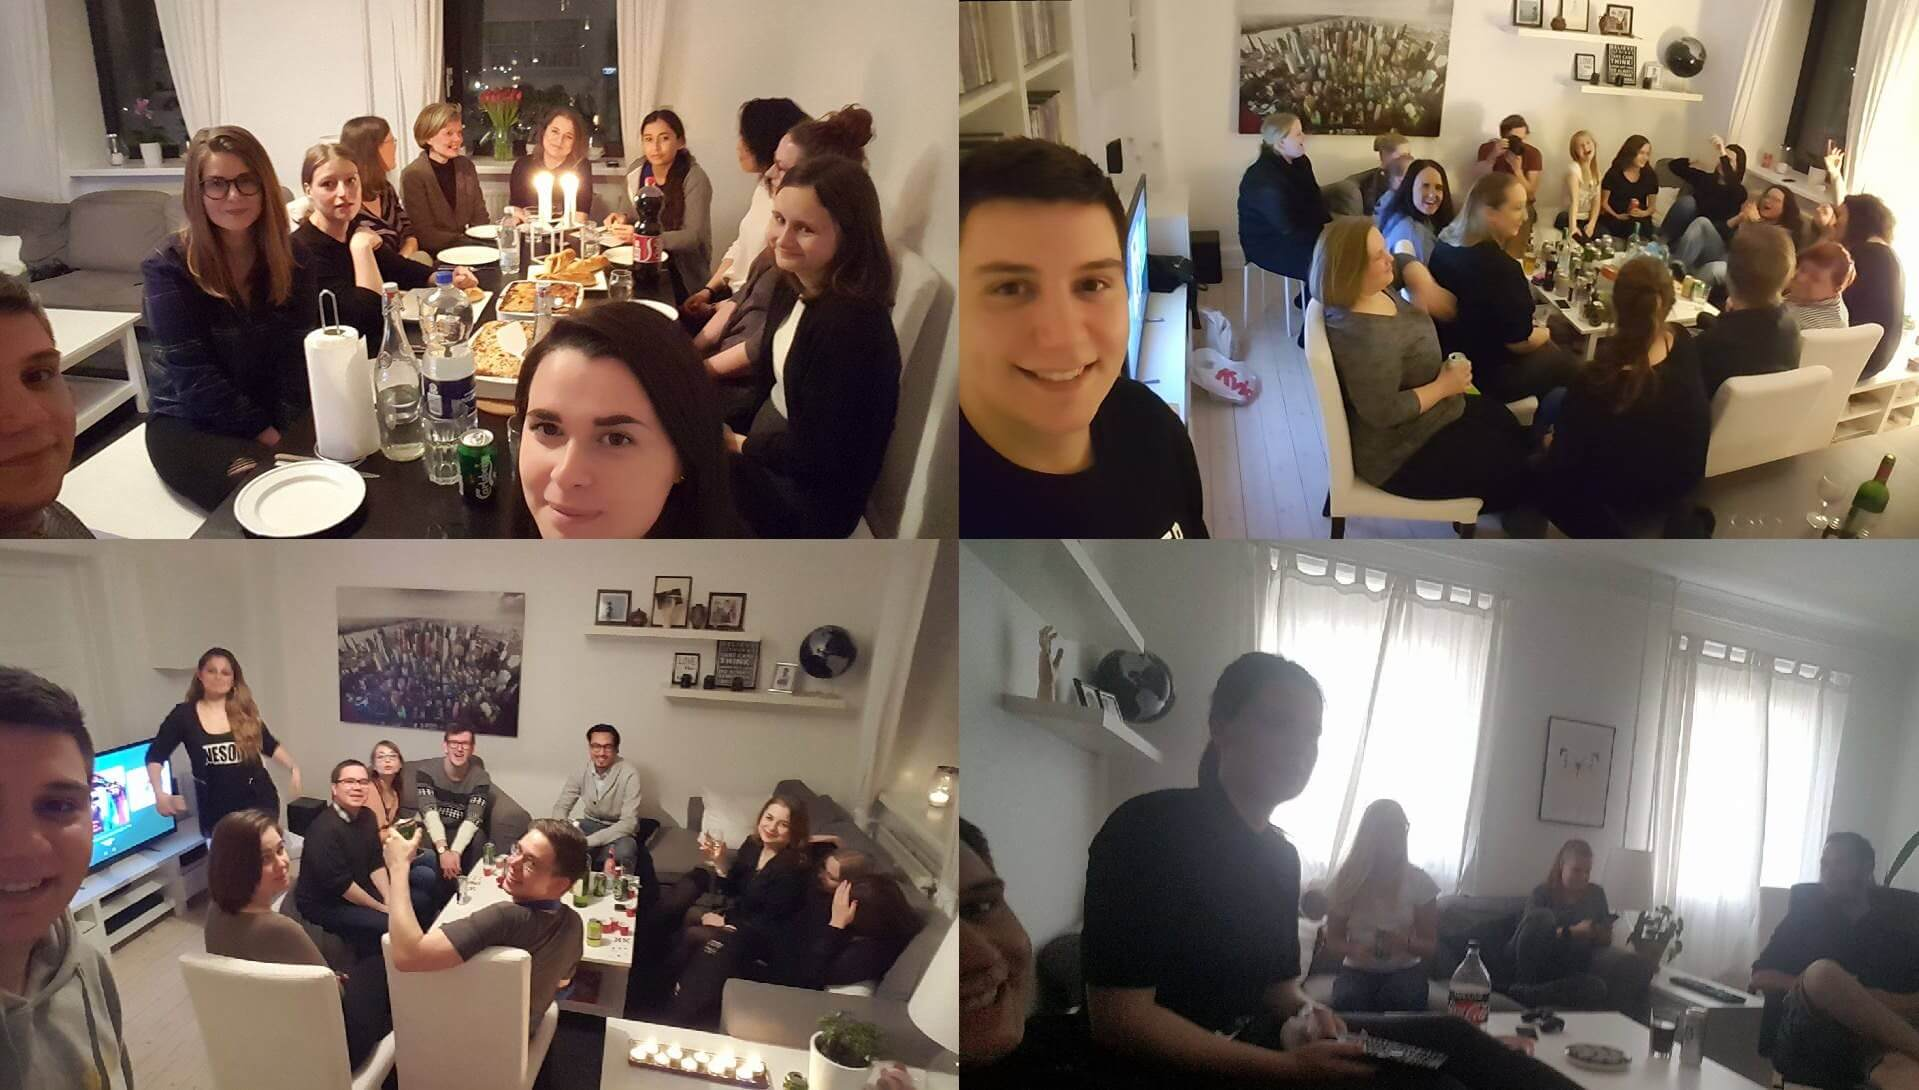 guy invites 100 strangers to his flat 4 (1)